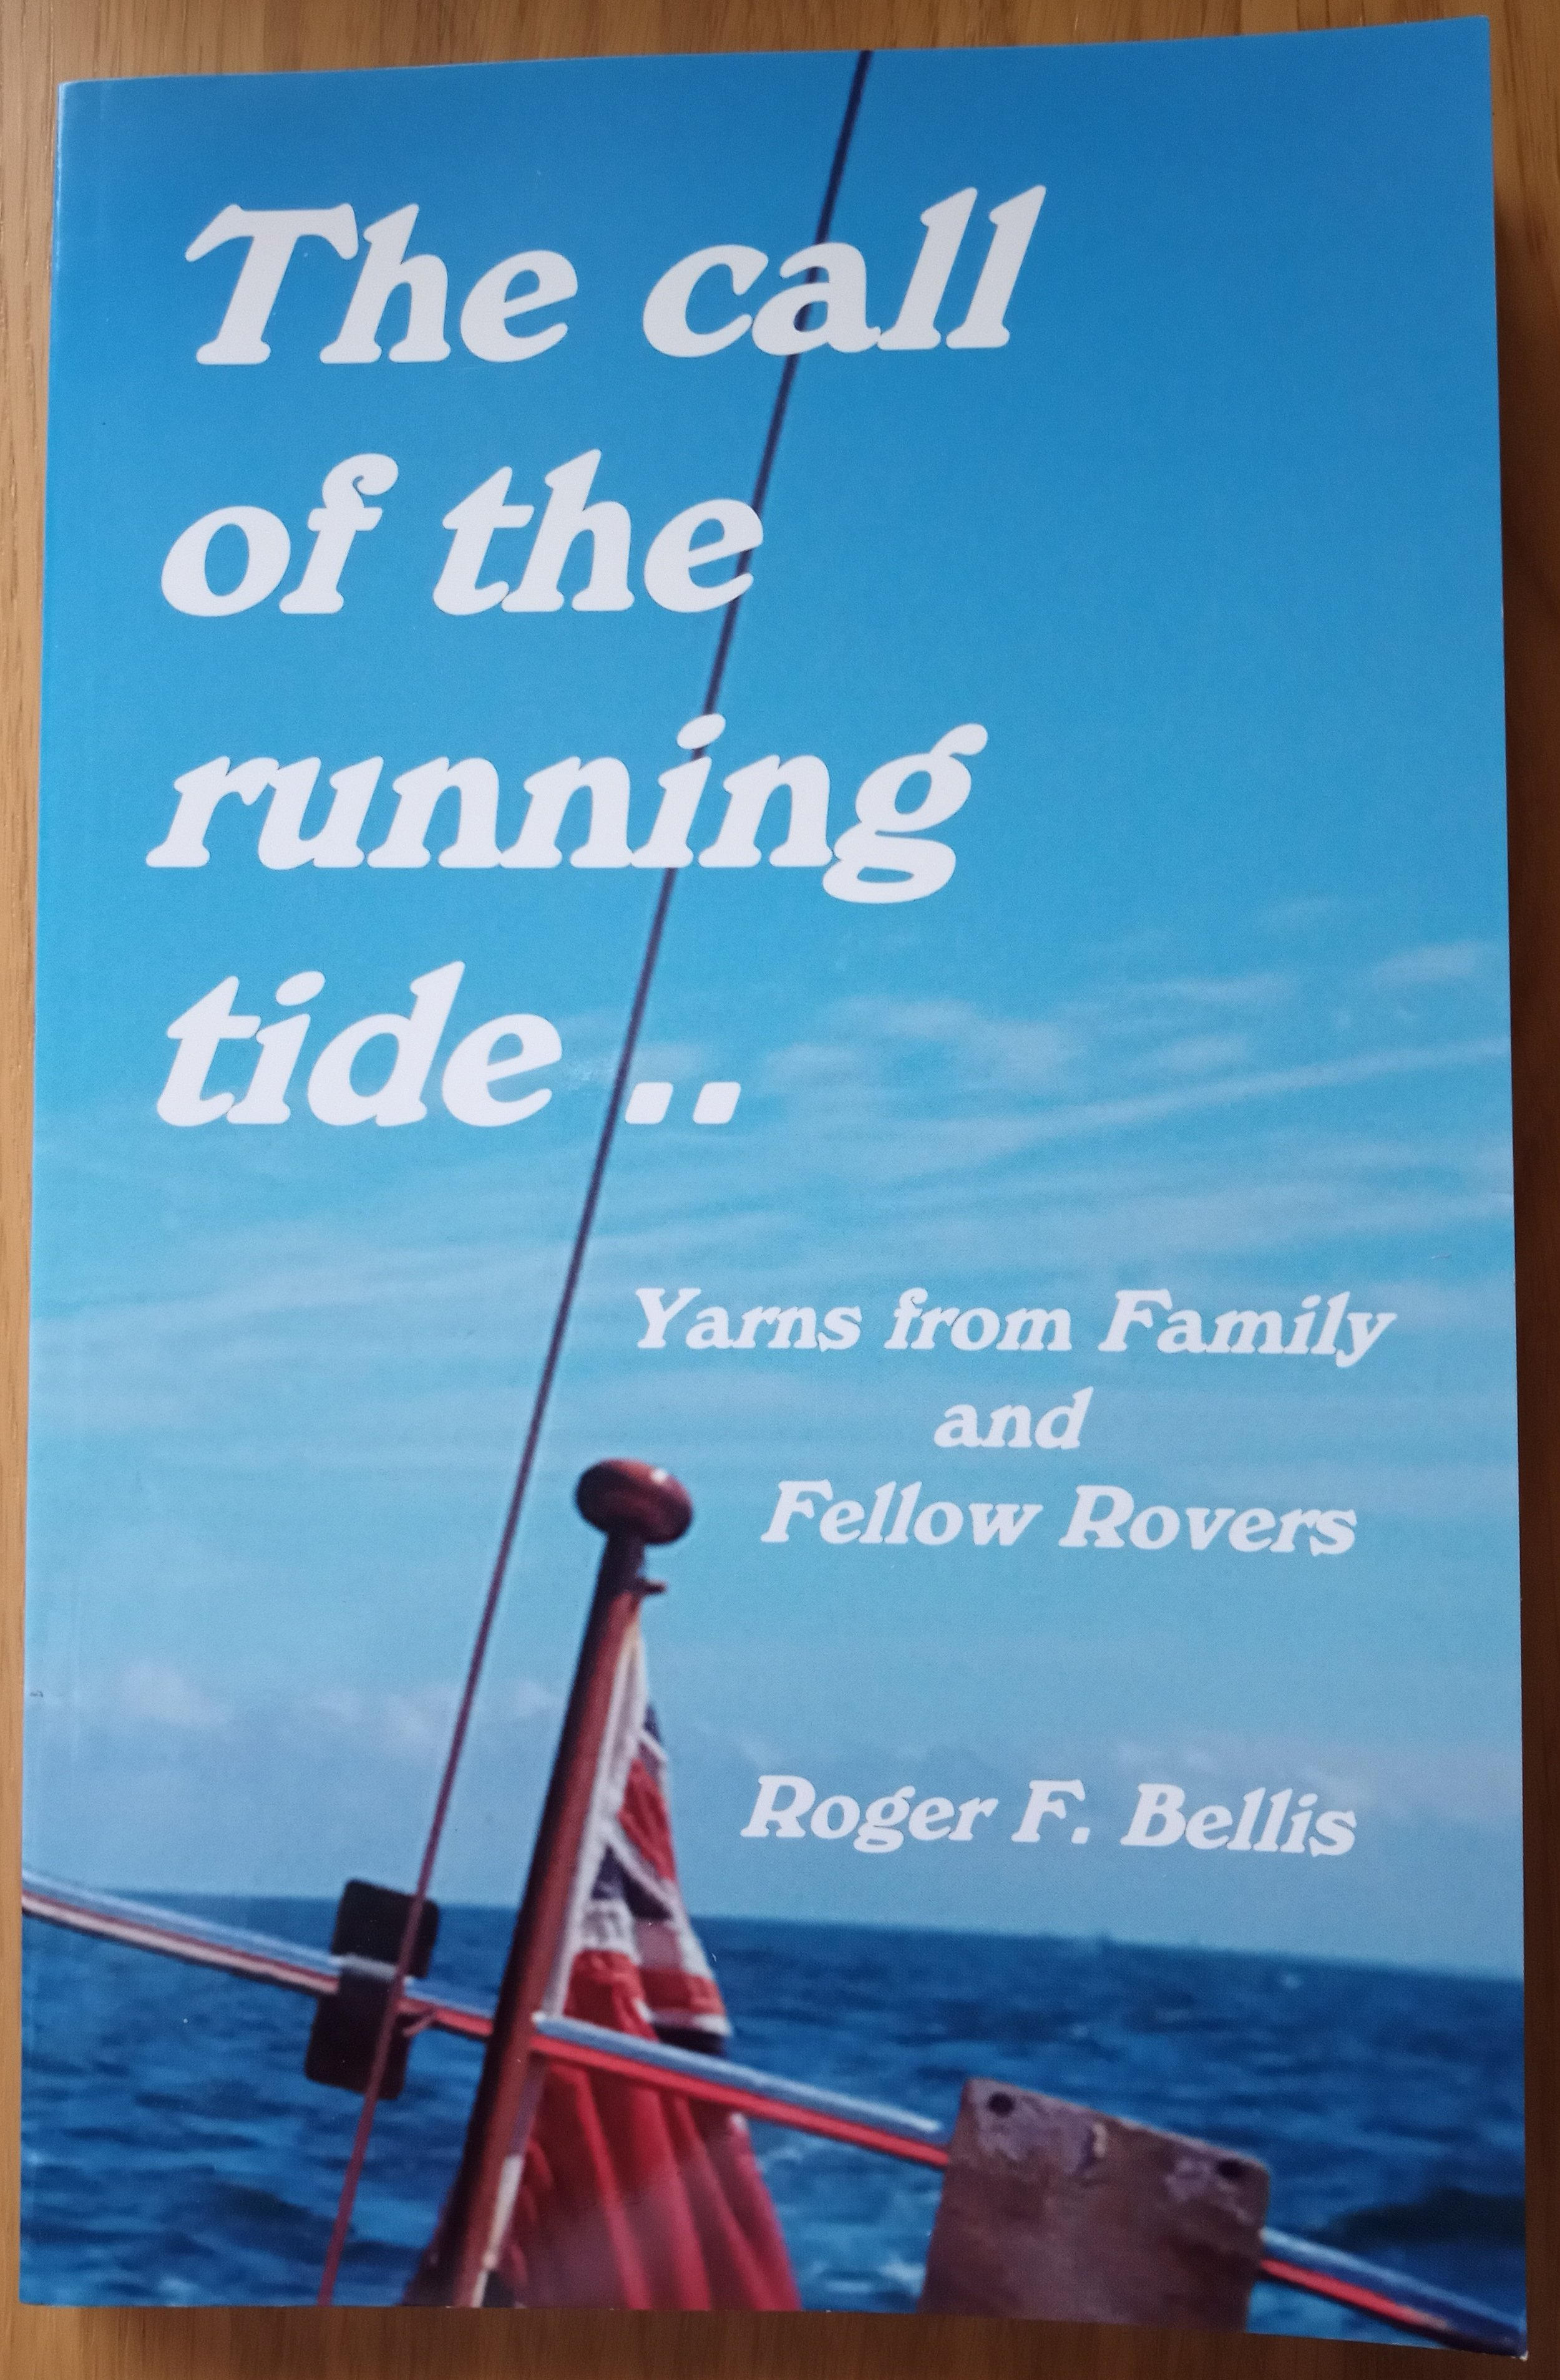 The Call of the Running Tide.. Yarns from Family and Fellow Rovers